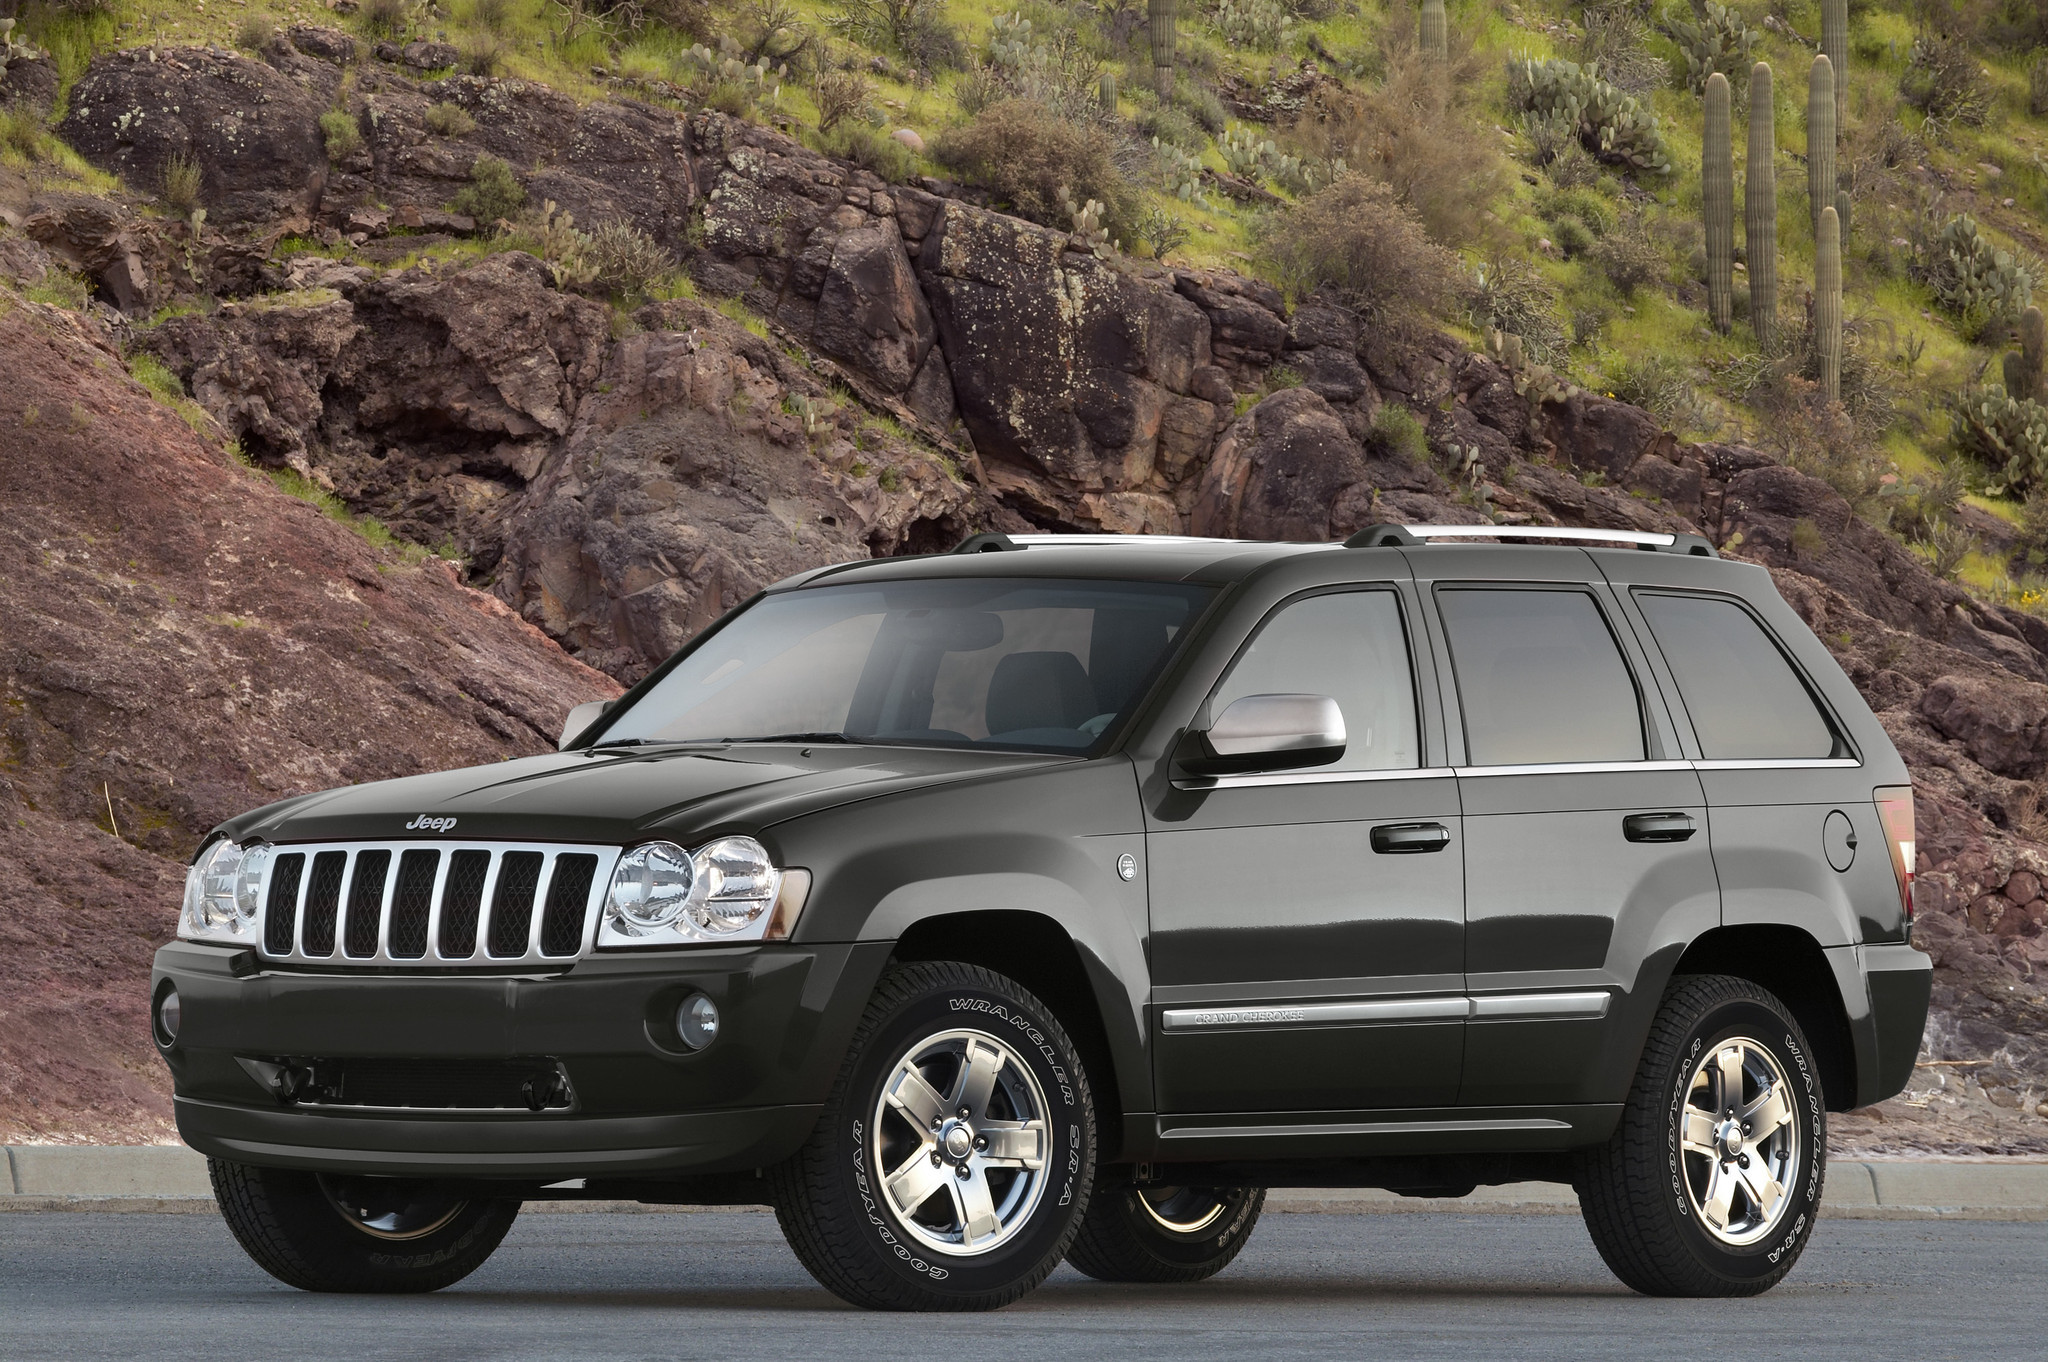 chrysler announces recall of up to 800 000 jeep suvs the. Black Bedroom Furniture Sets. Home Design Ideas